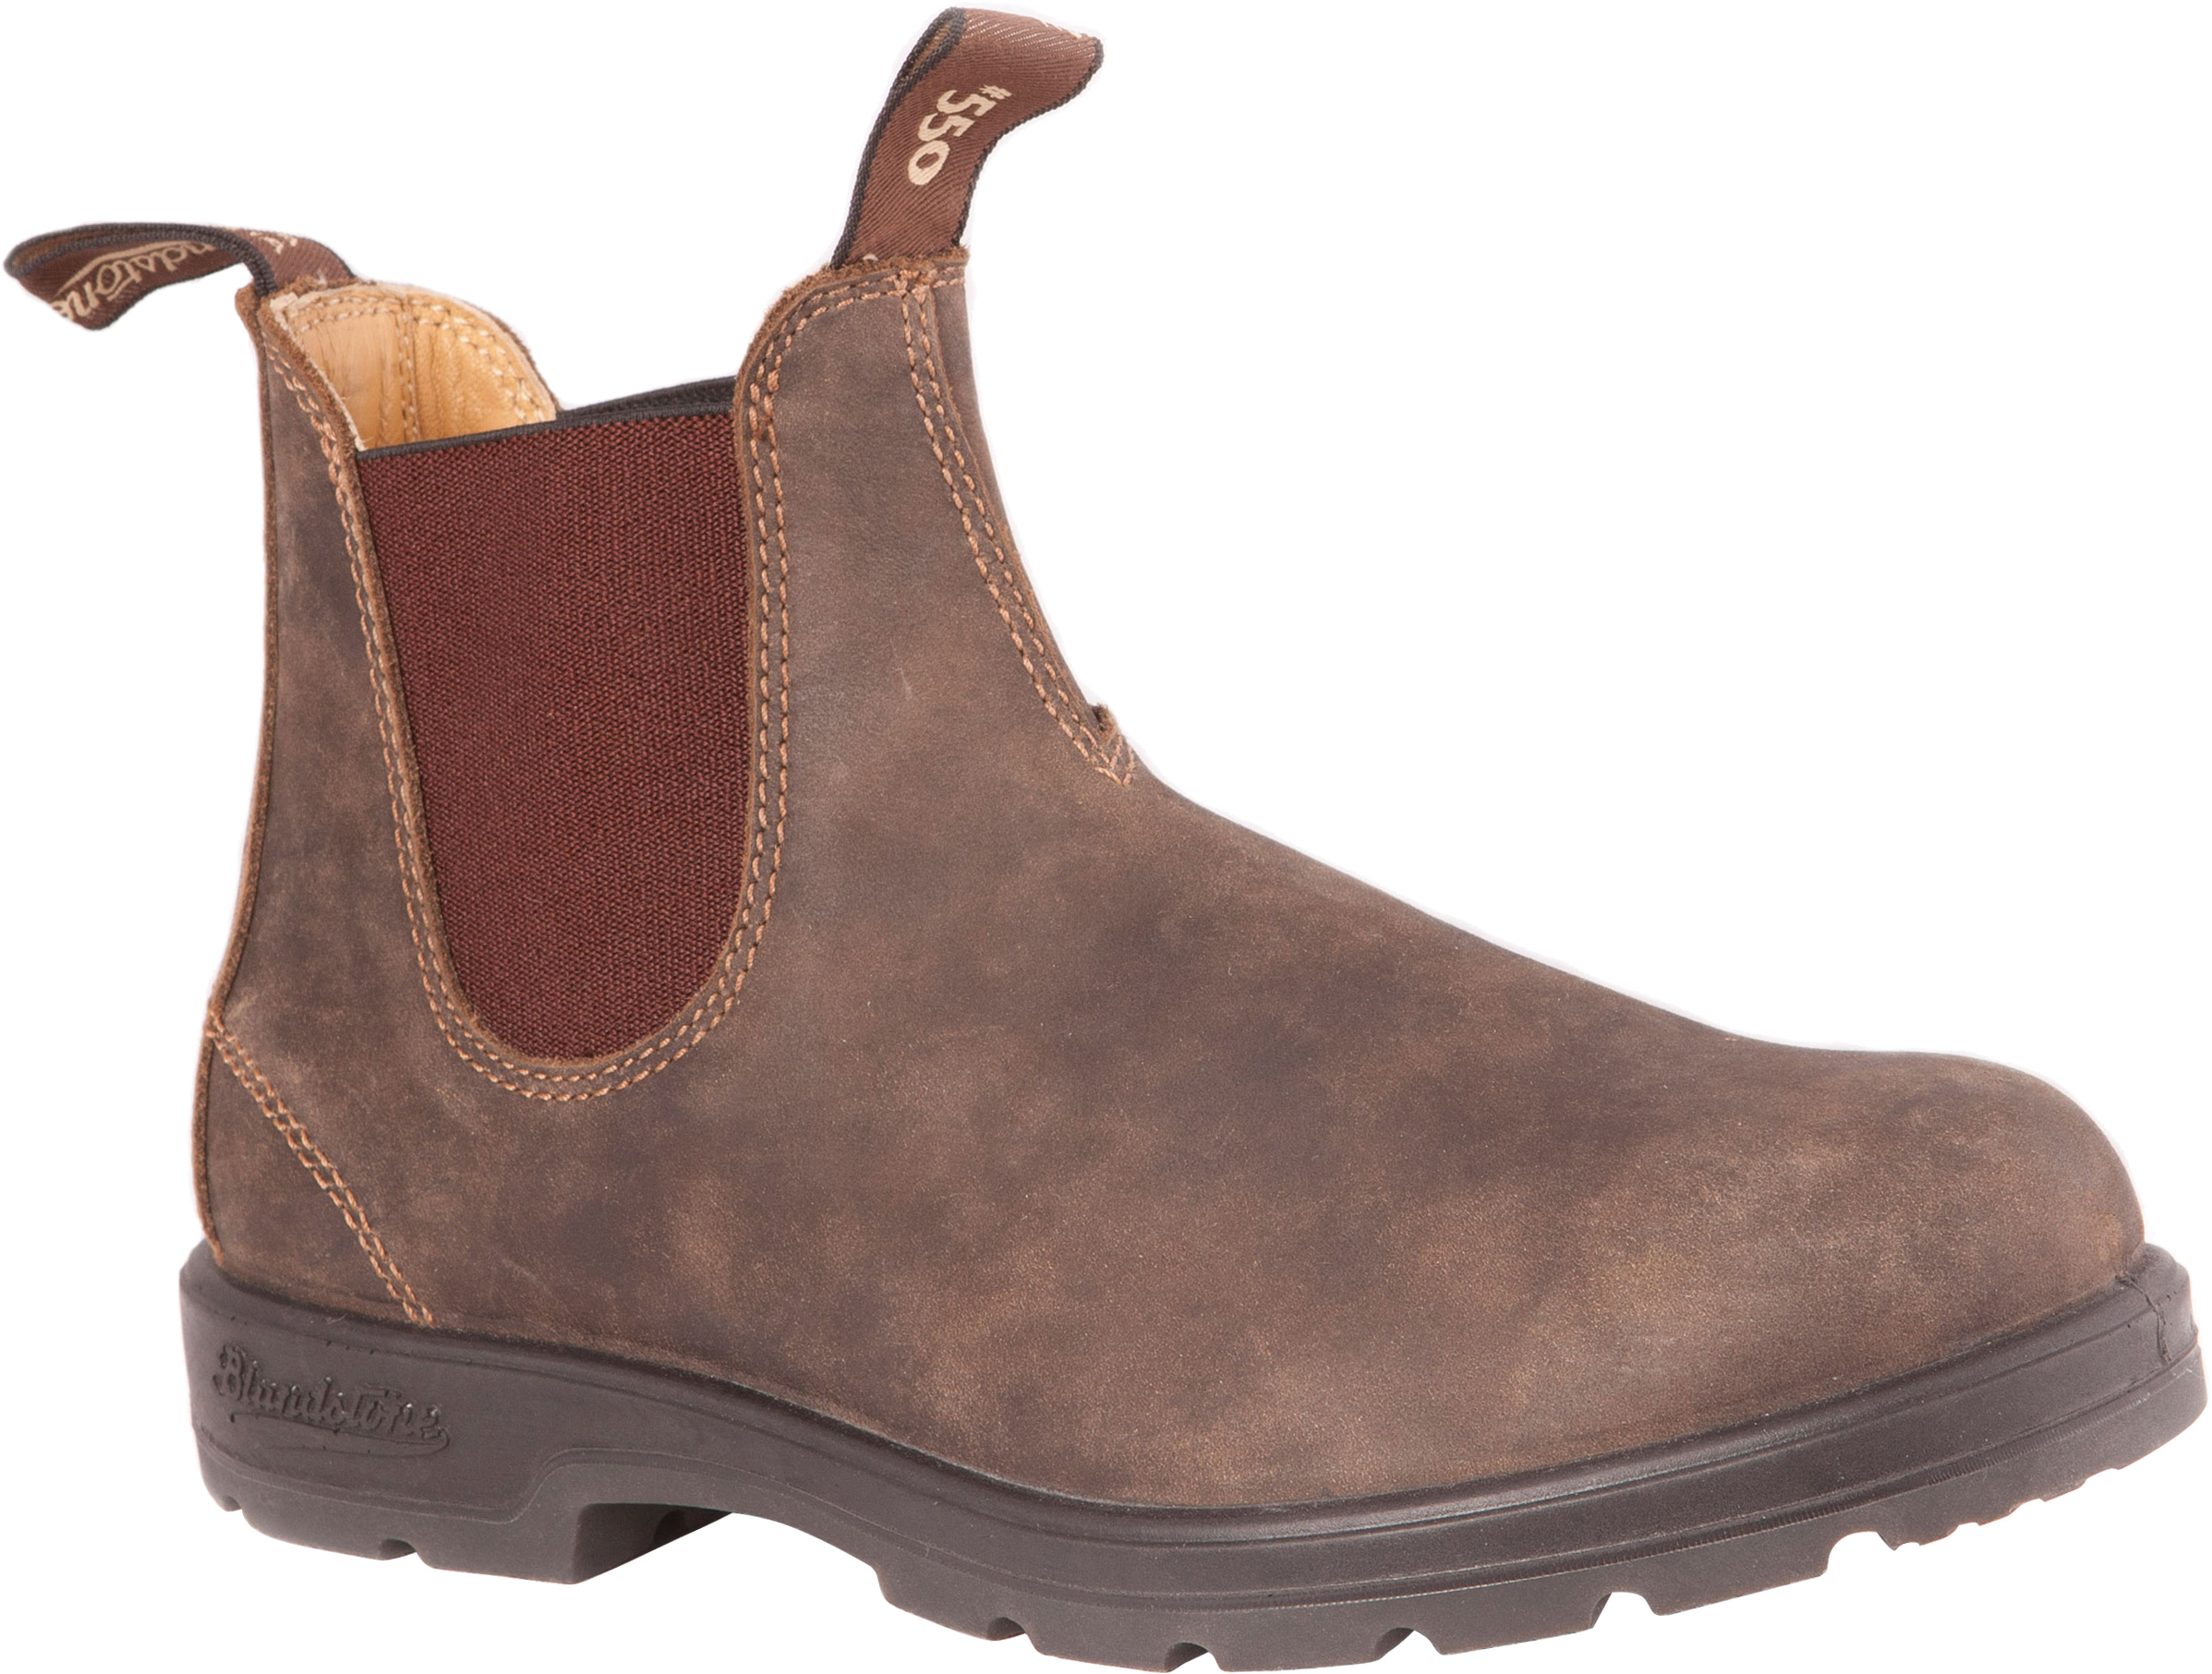 766b29197a7c Blundstone Leather Lined 585 Boots - Unisex